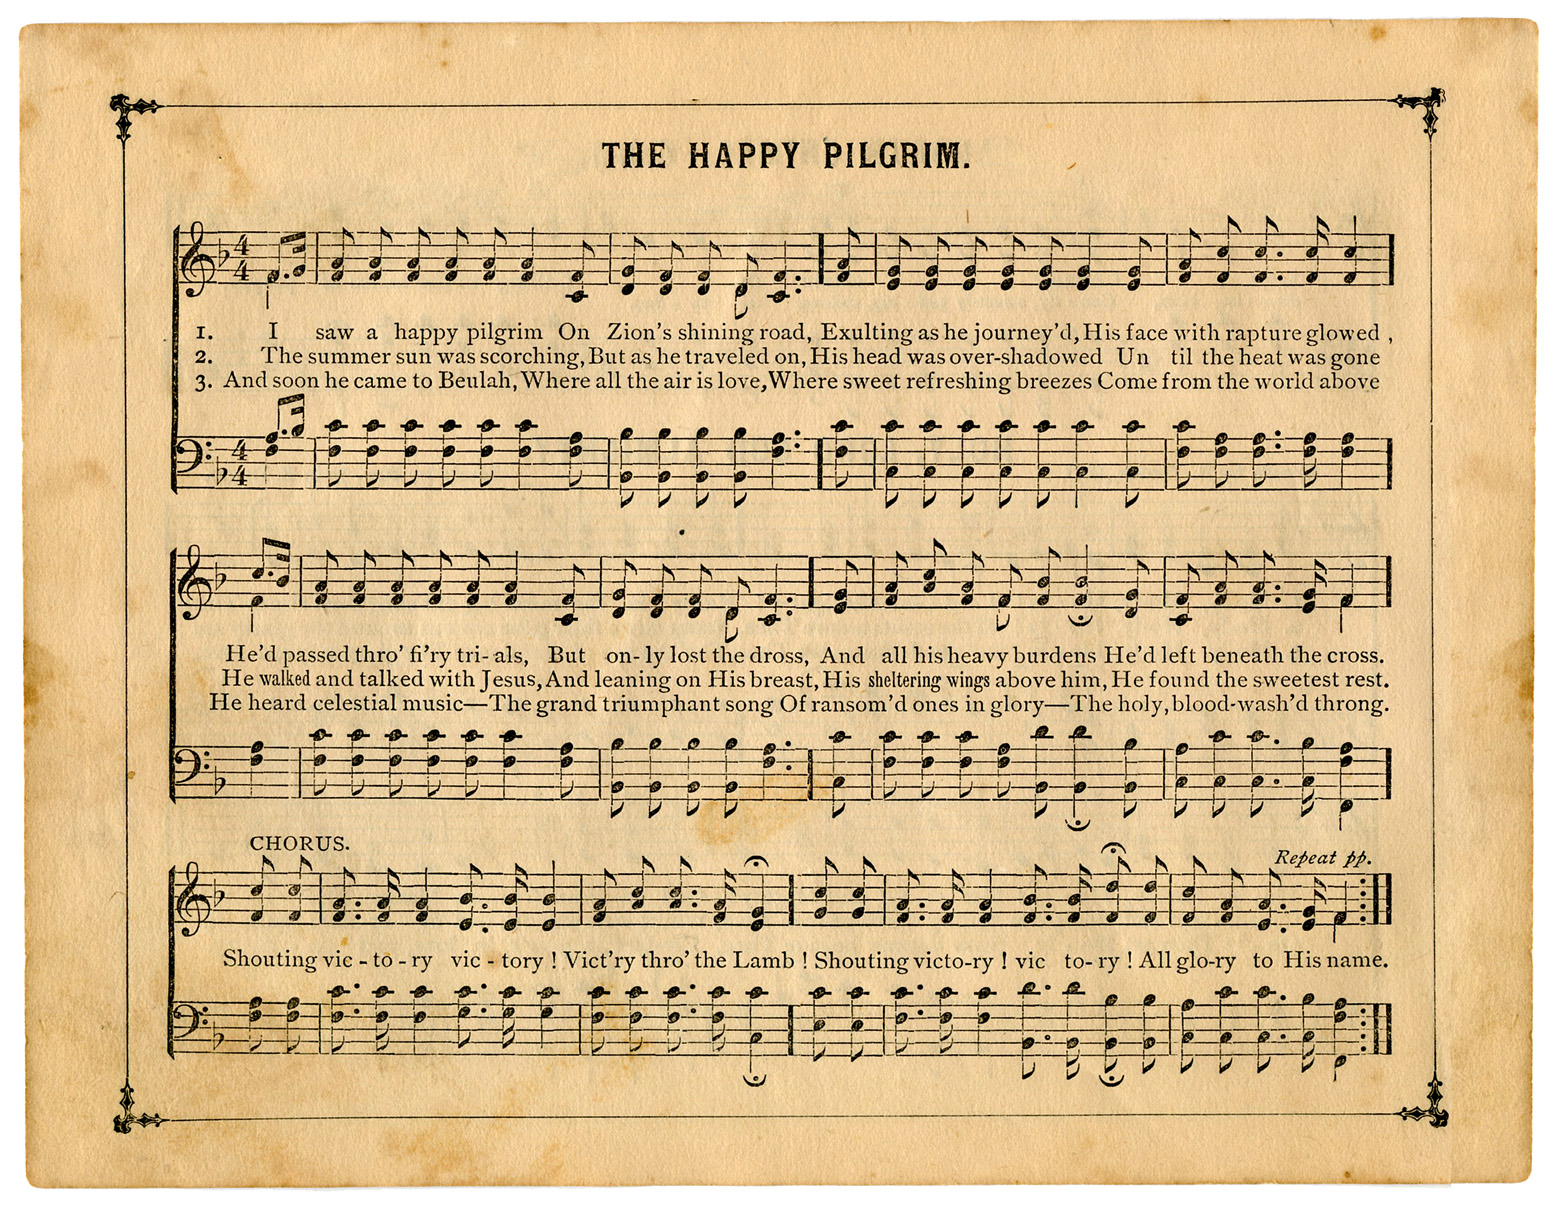 Old sheet music clipart image transparent download Old sheet music clipart - ClipartFest image transparent download